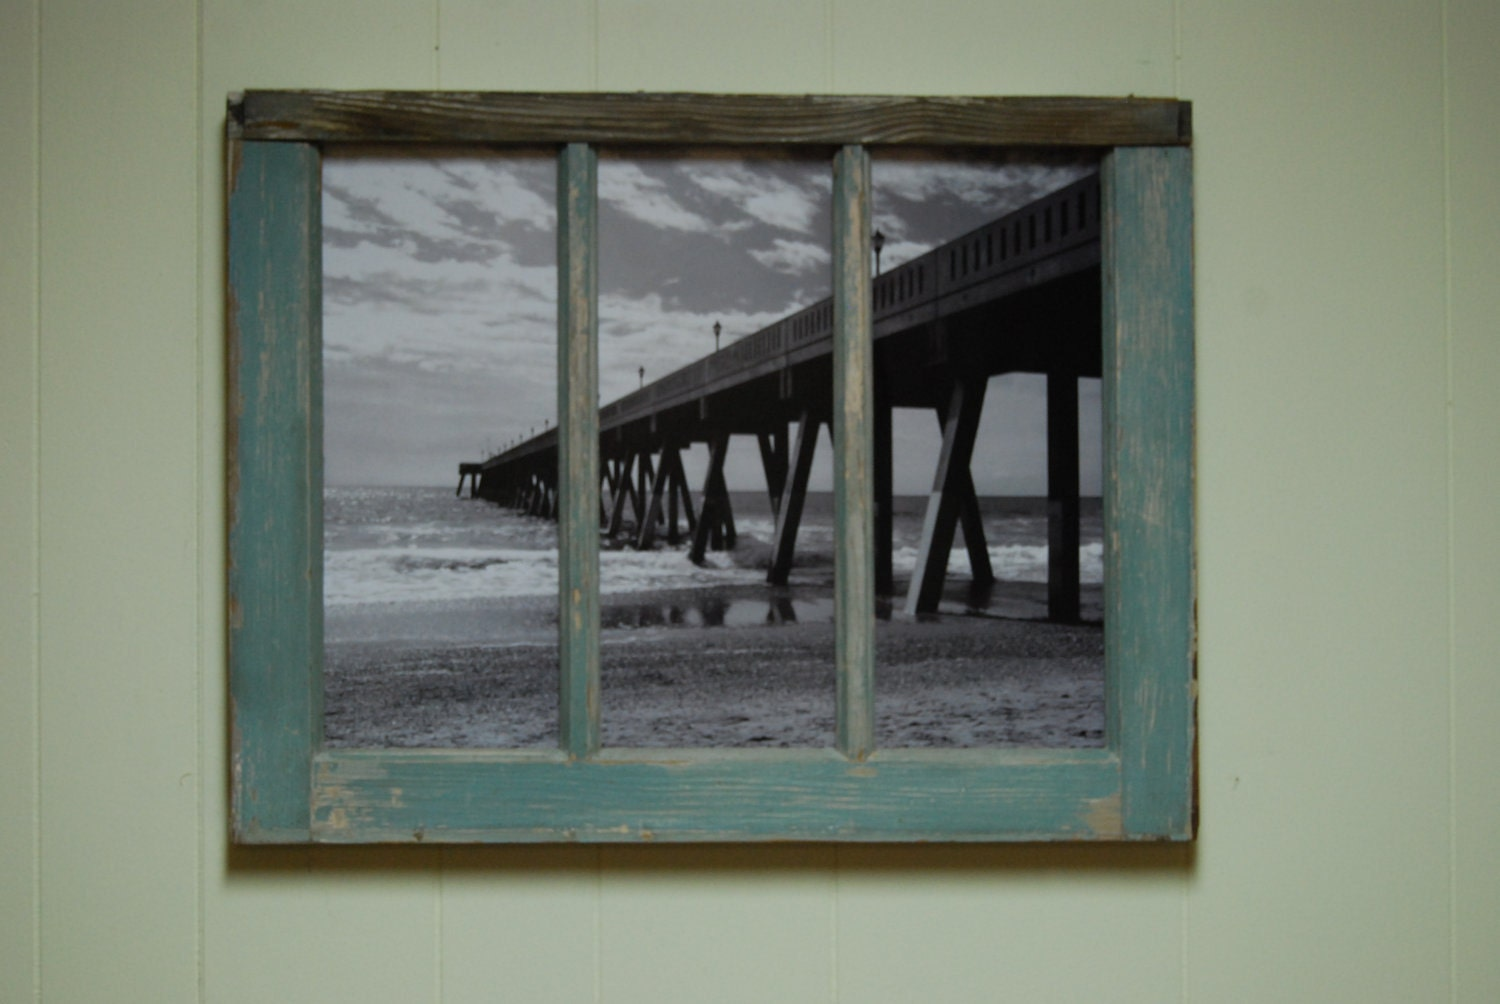 Johnnie mercer 39 s pier photo framed in an old window frame for Using old windows as picture frames